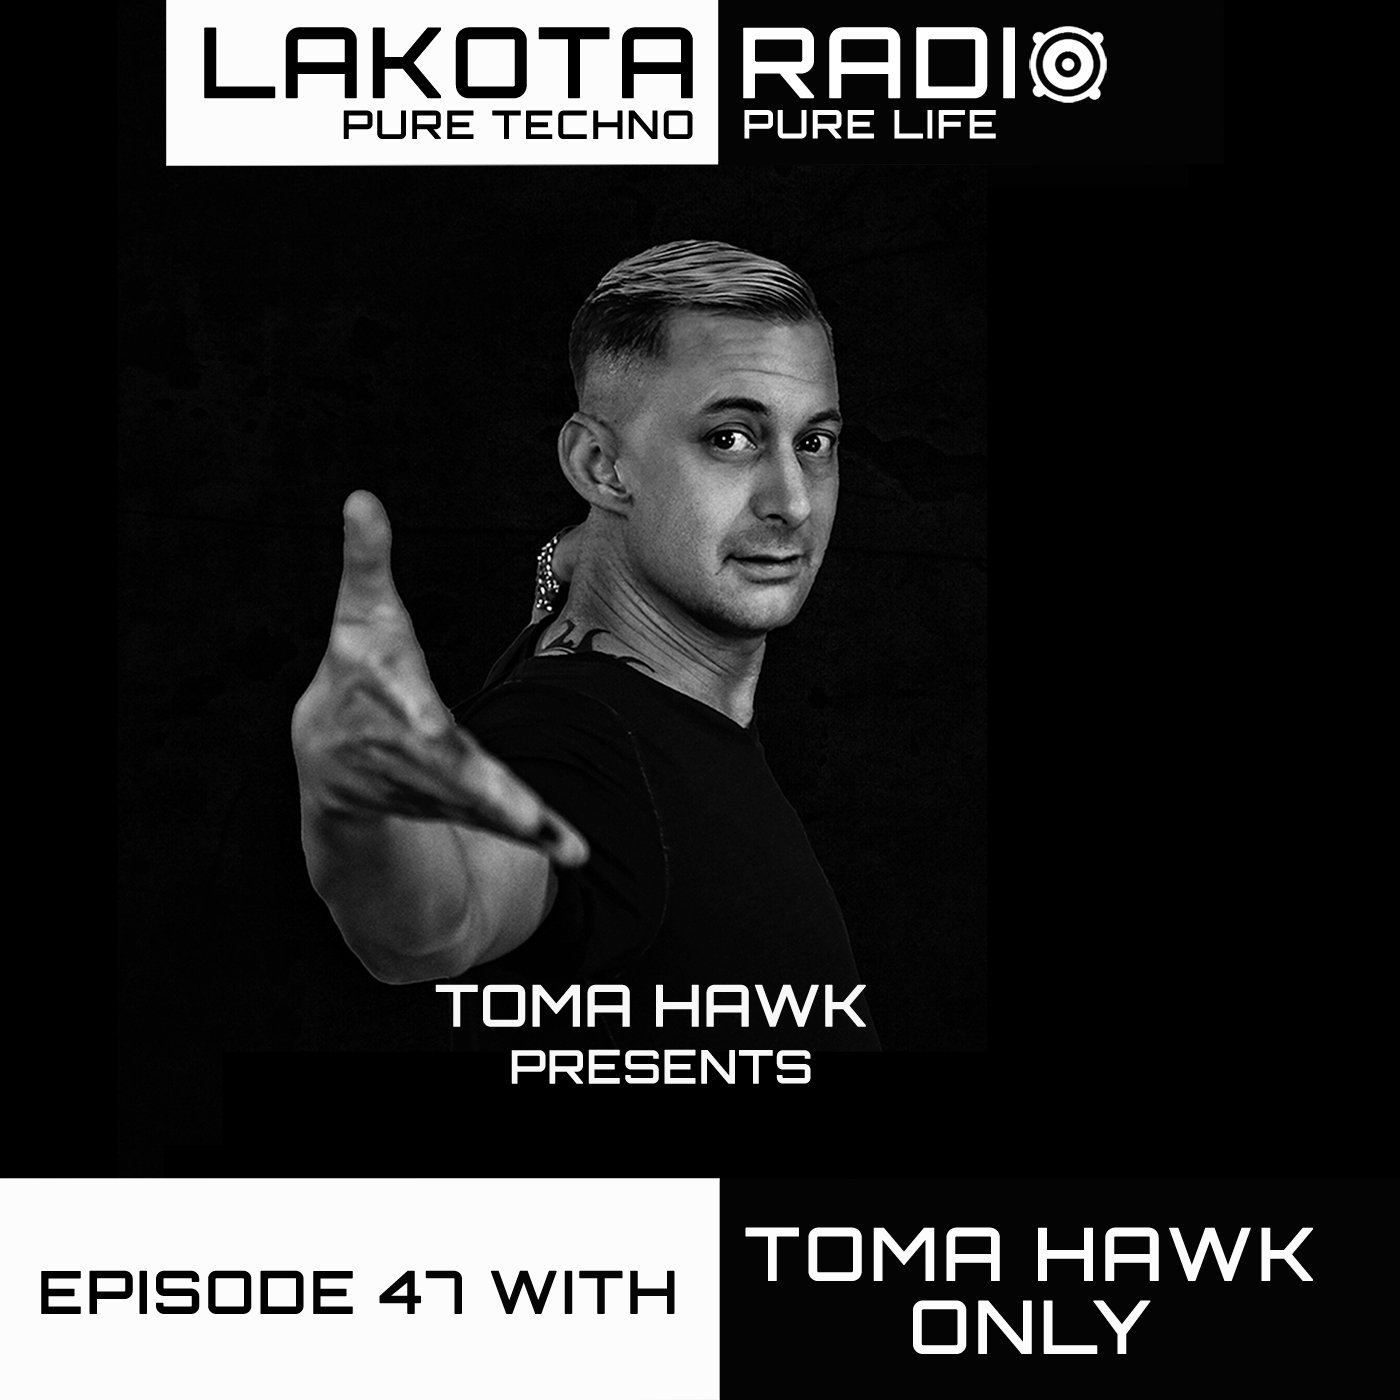 toma_hawk_lakota_radio_047